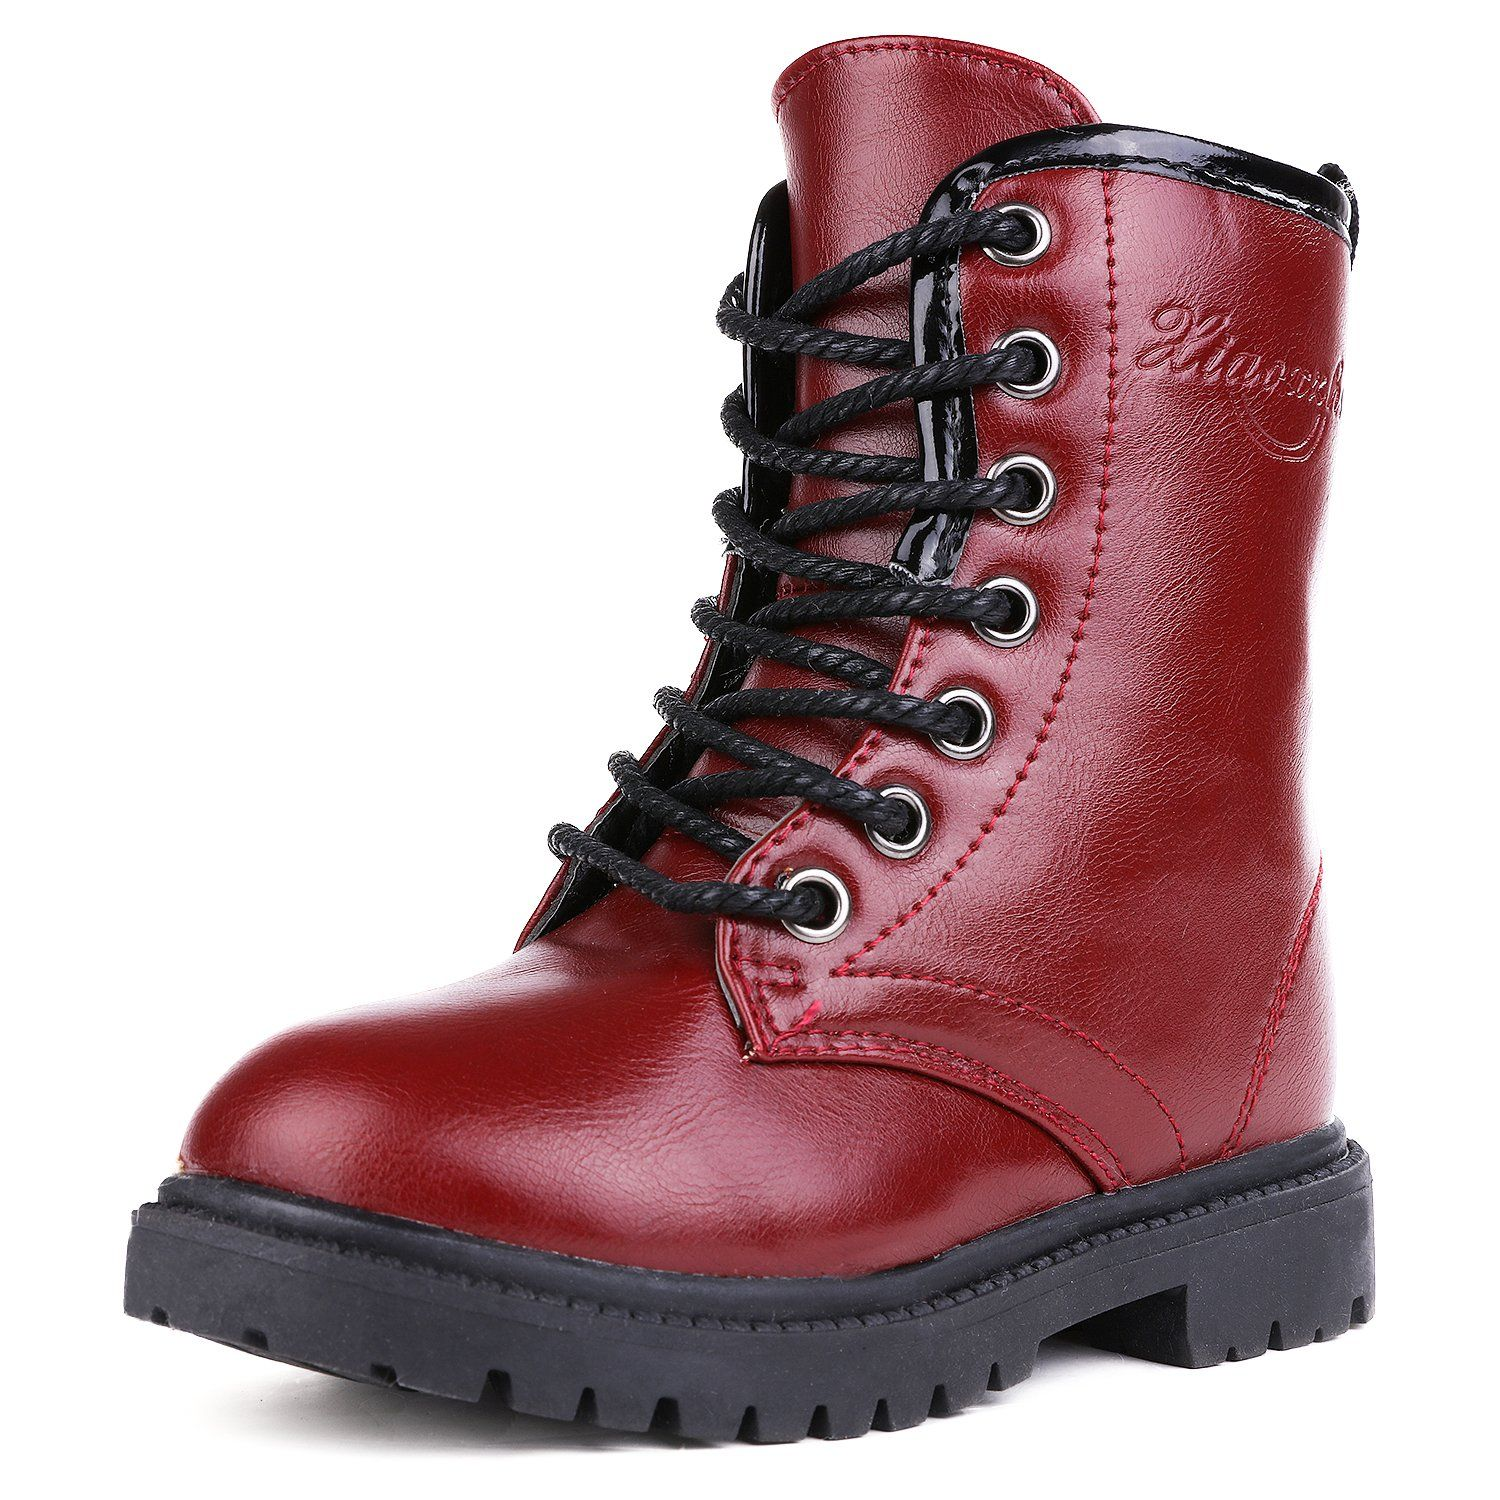 eaf32ed2aaad UBELLA Unisex Boys Girls Leather Side Zipper Lace-Up Mid Calf Martin Boots.  Rubber